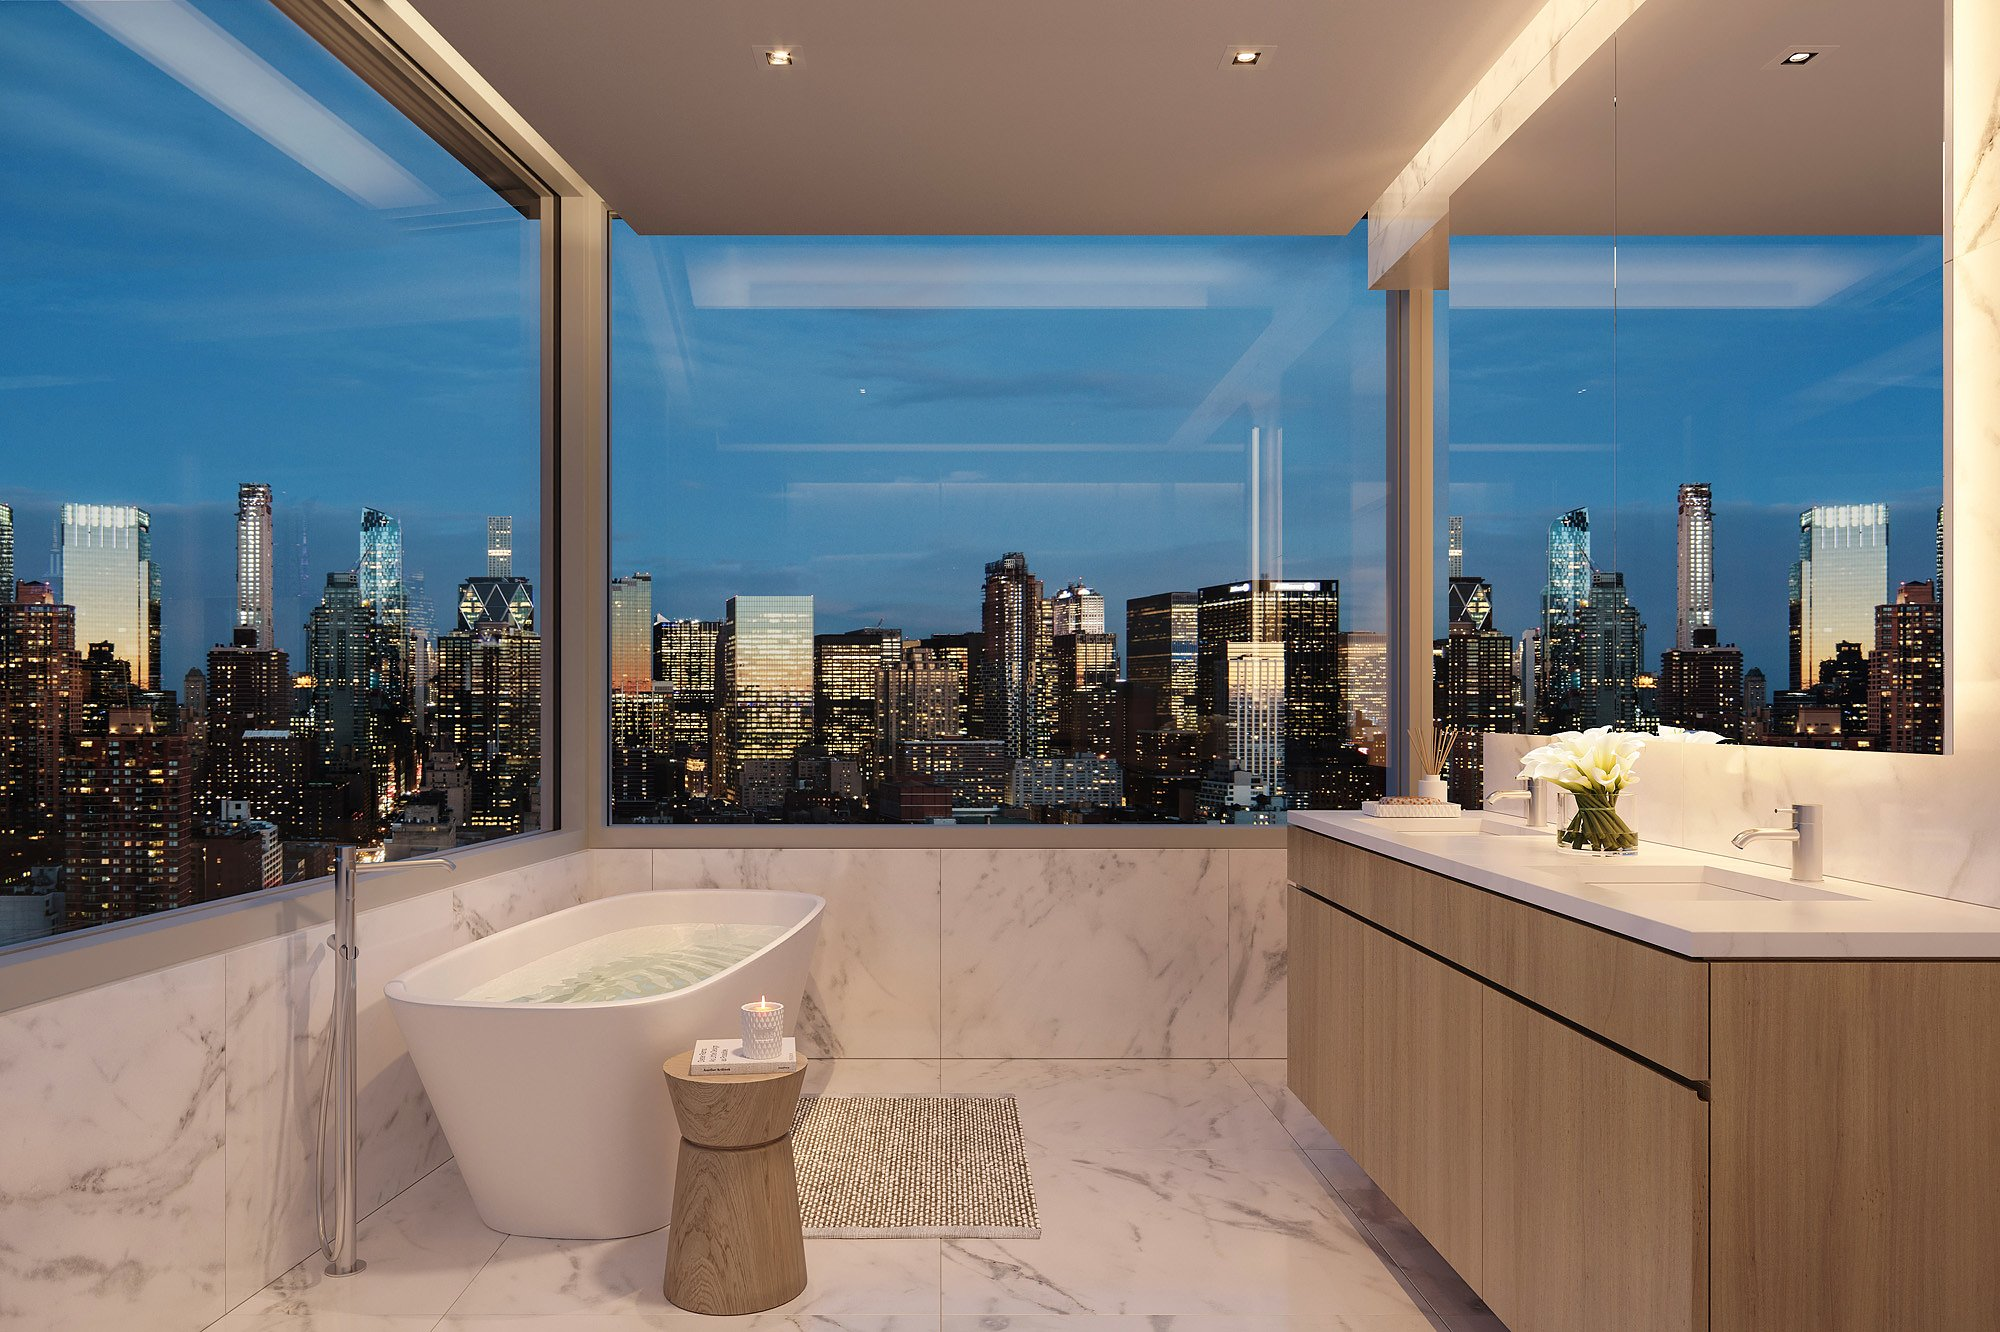 611 West 56th Street Master Bath